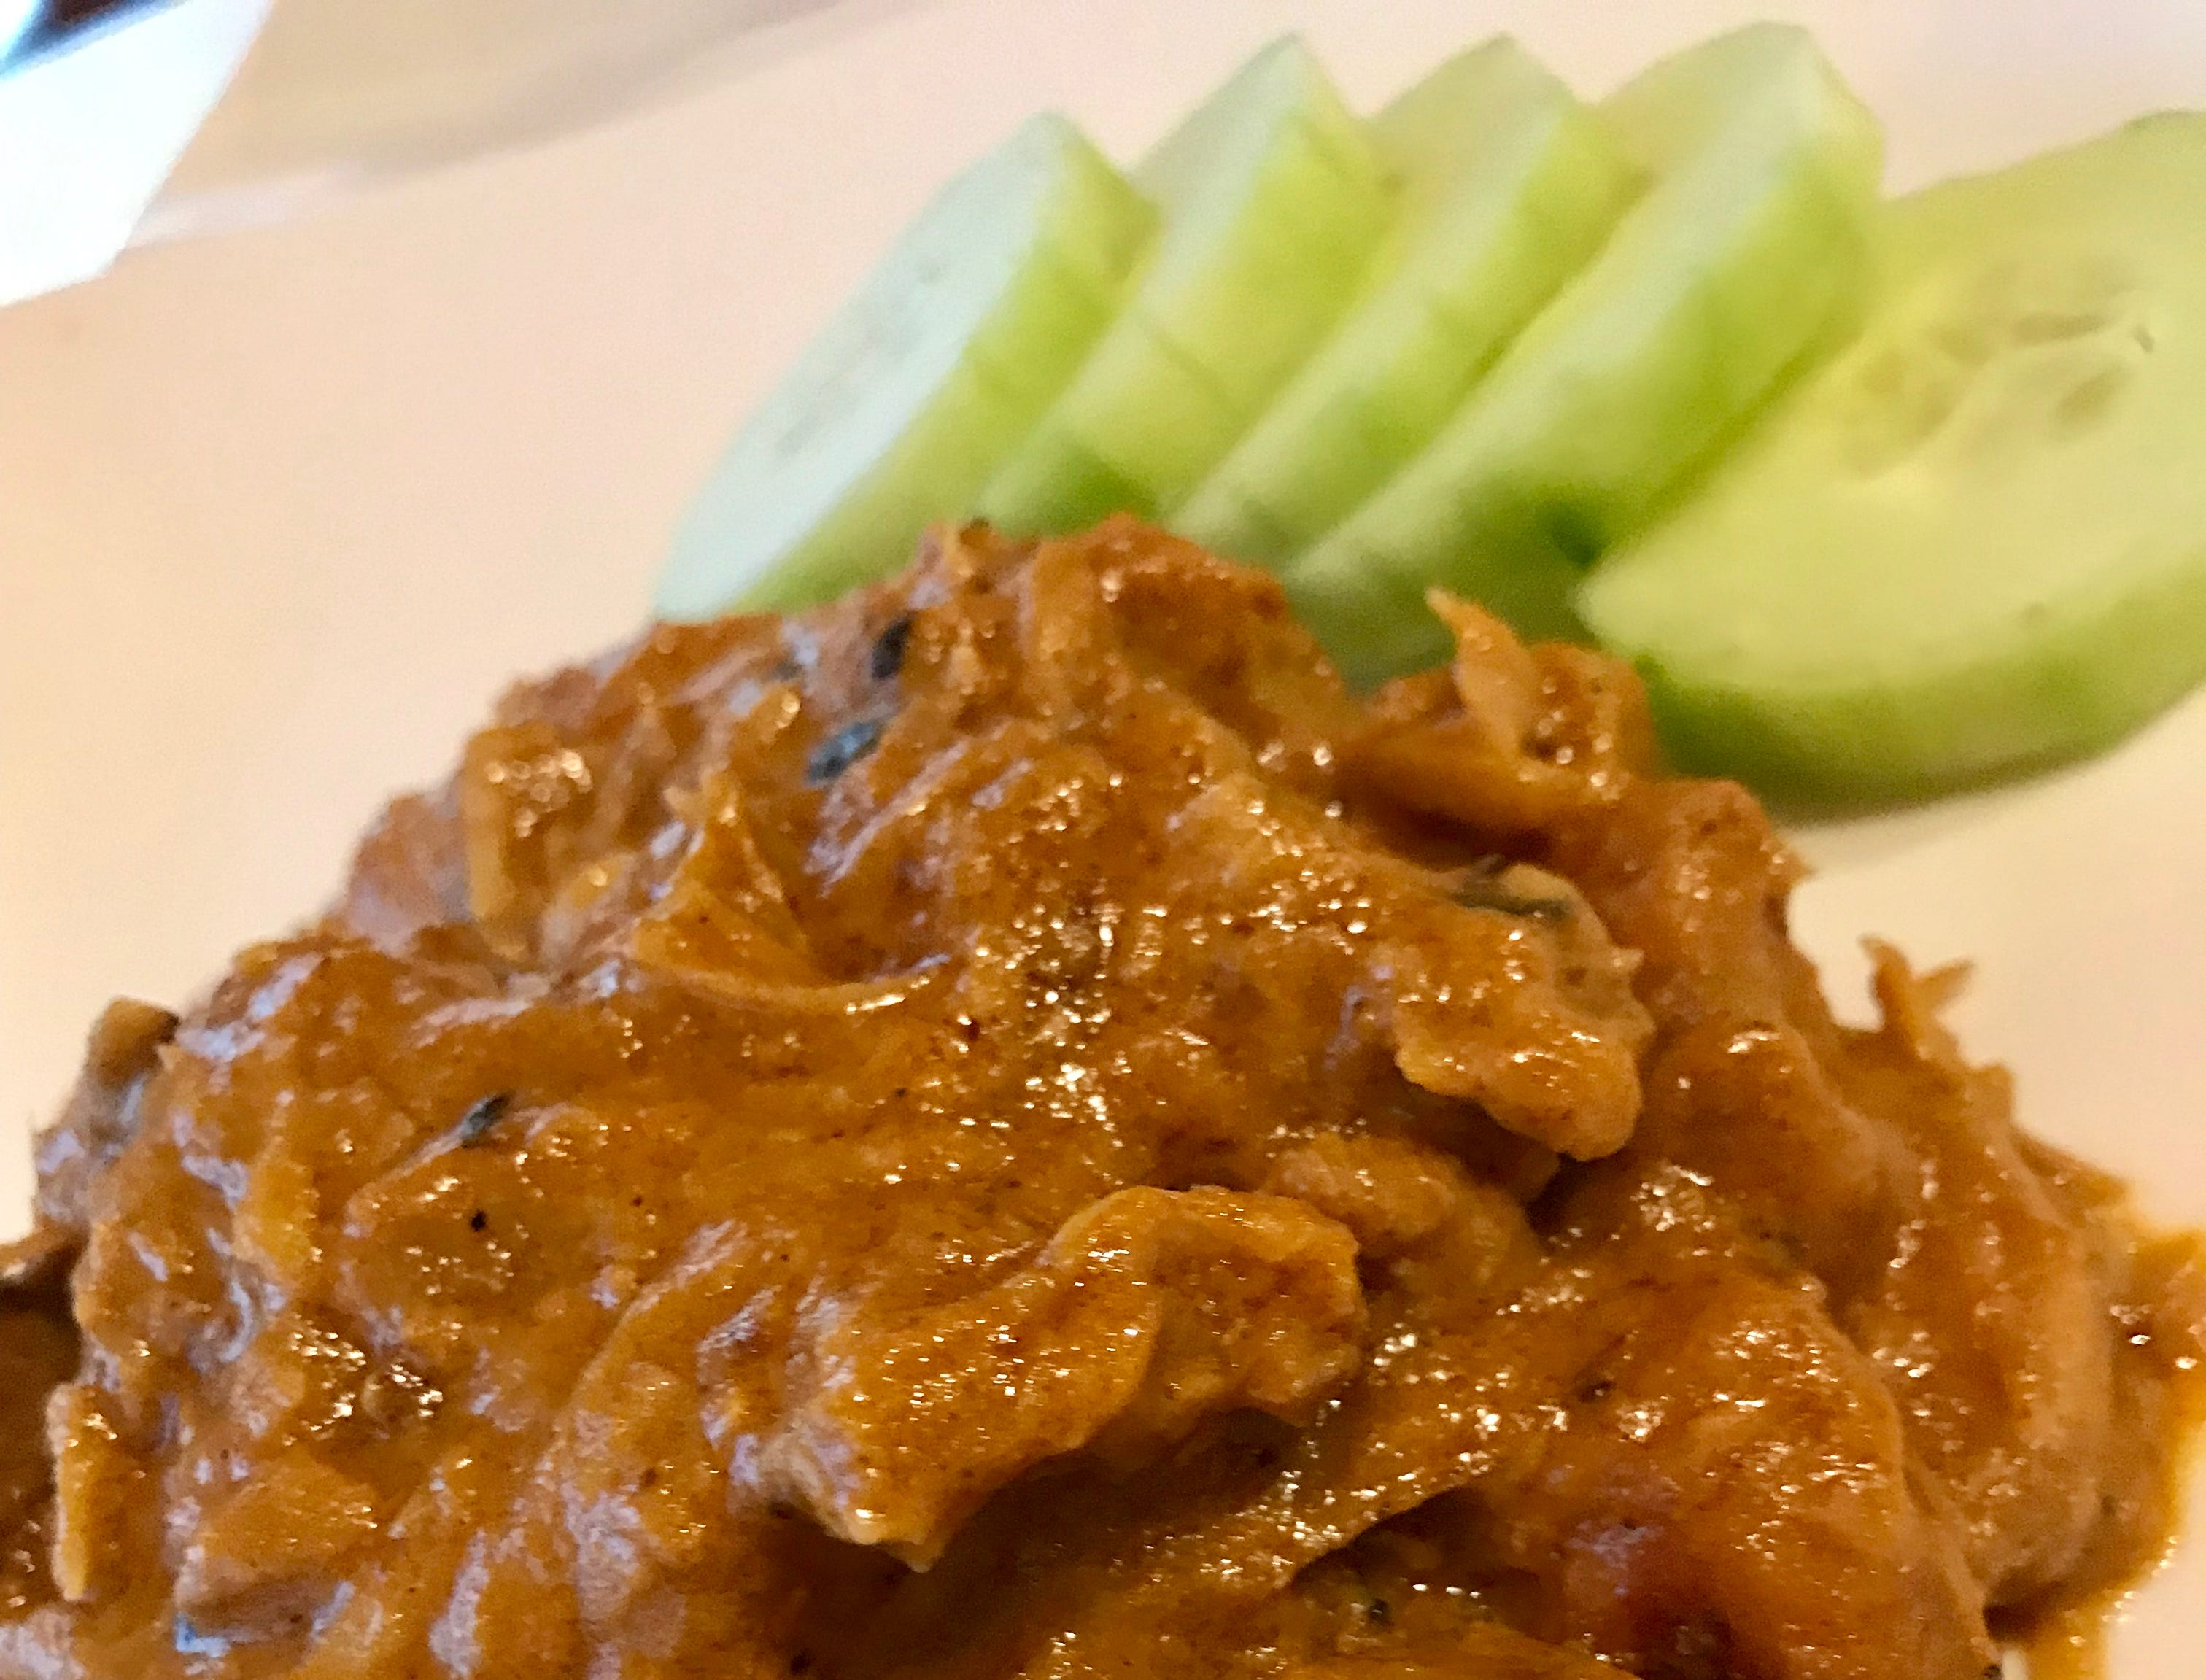 Chicken rendang, flavored with coconut, is one of the Malaysian dishes at Mr. Wok in Pewaukee.